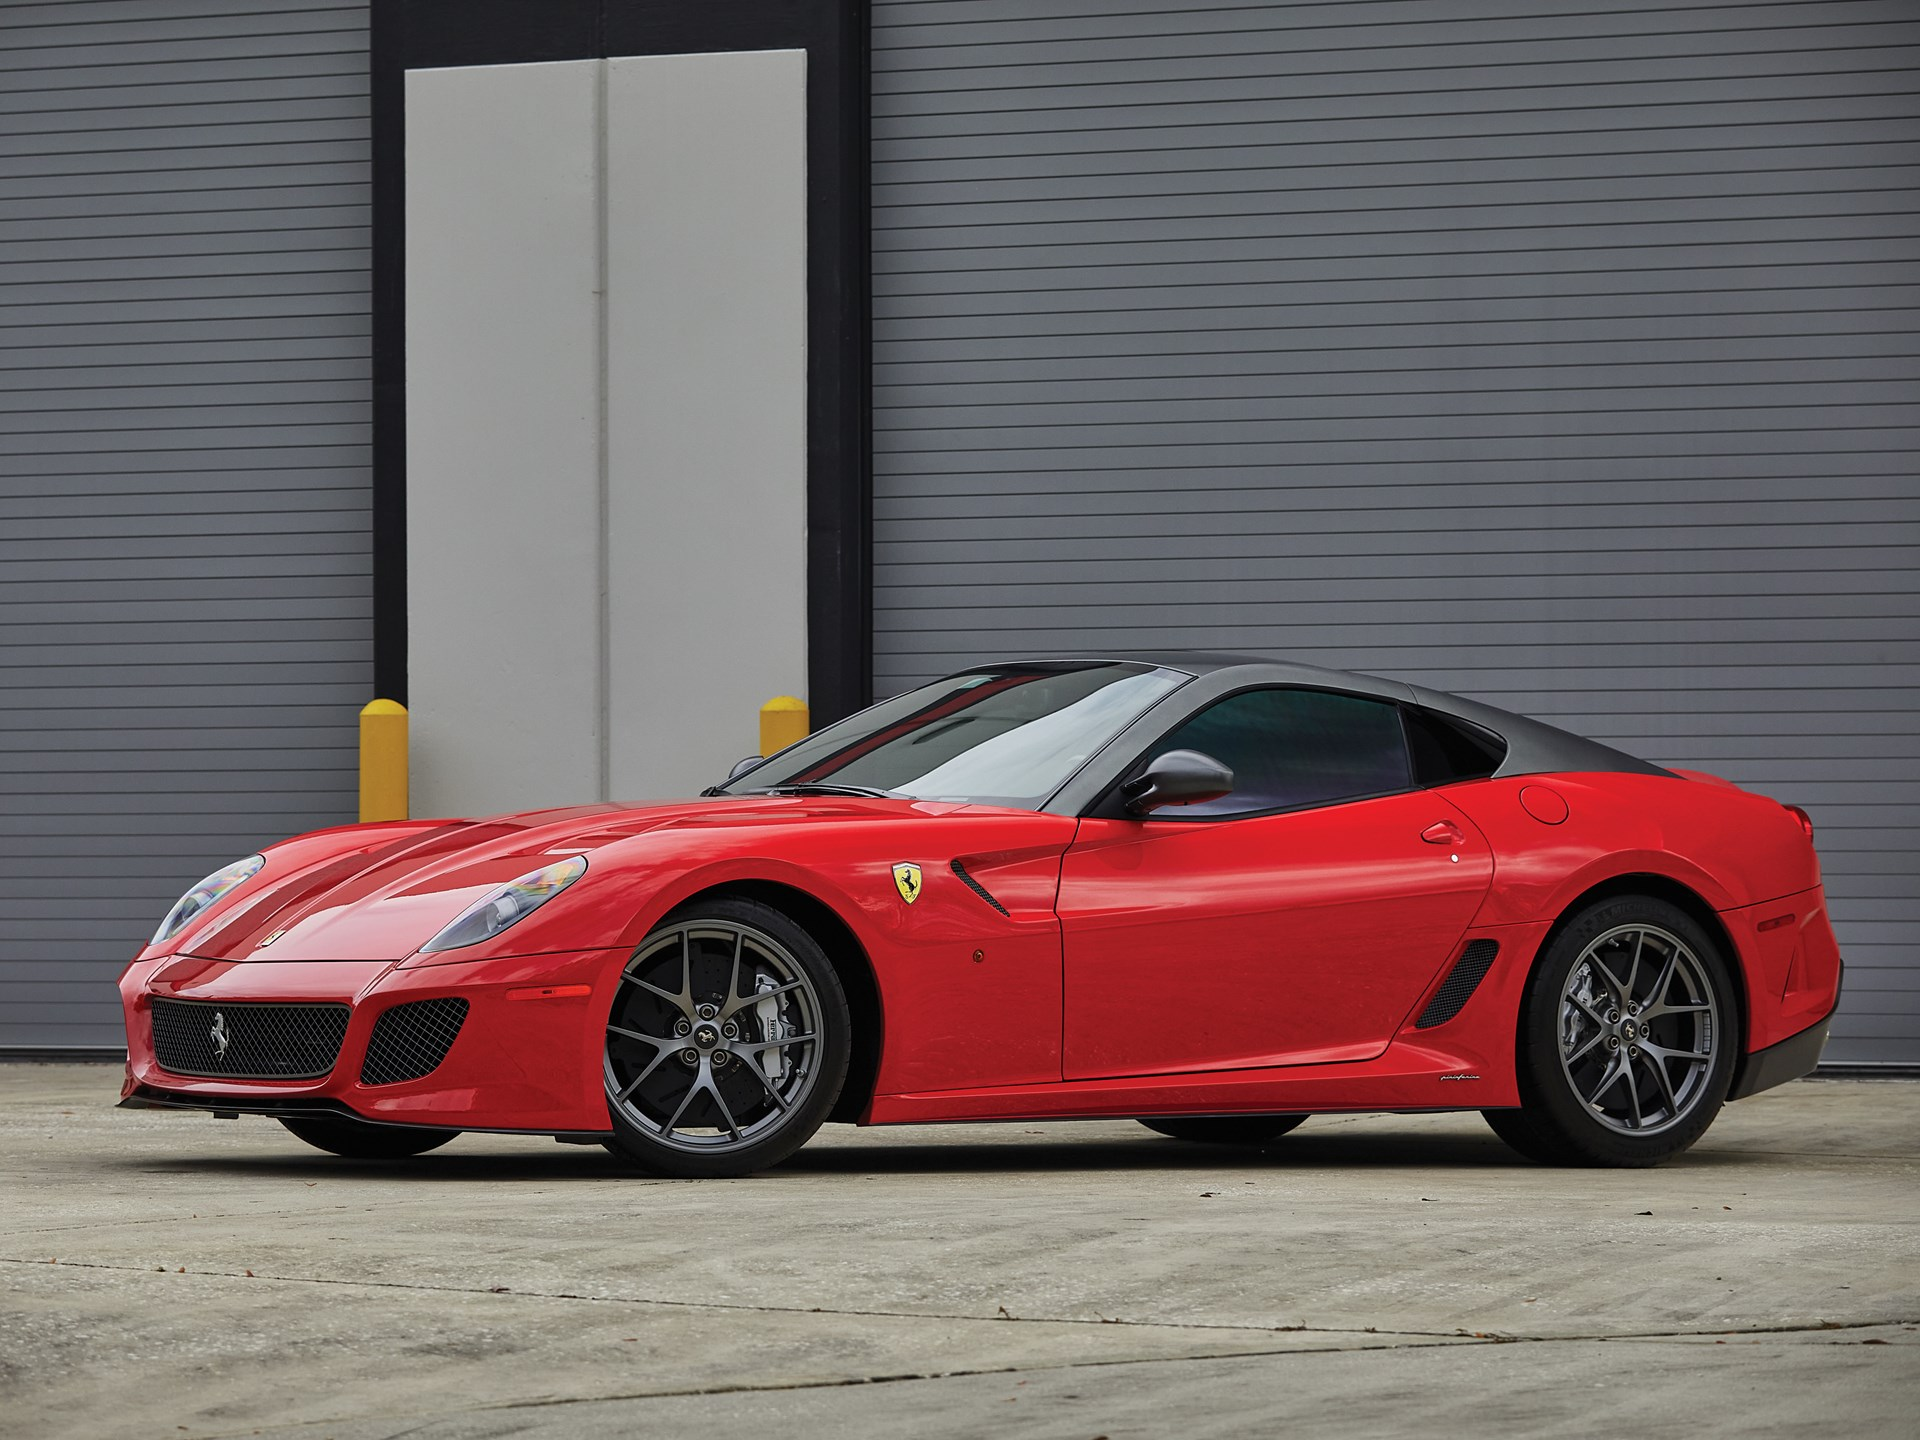 Image result for RM amelia 2020 ferrari 599gto